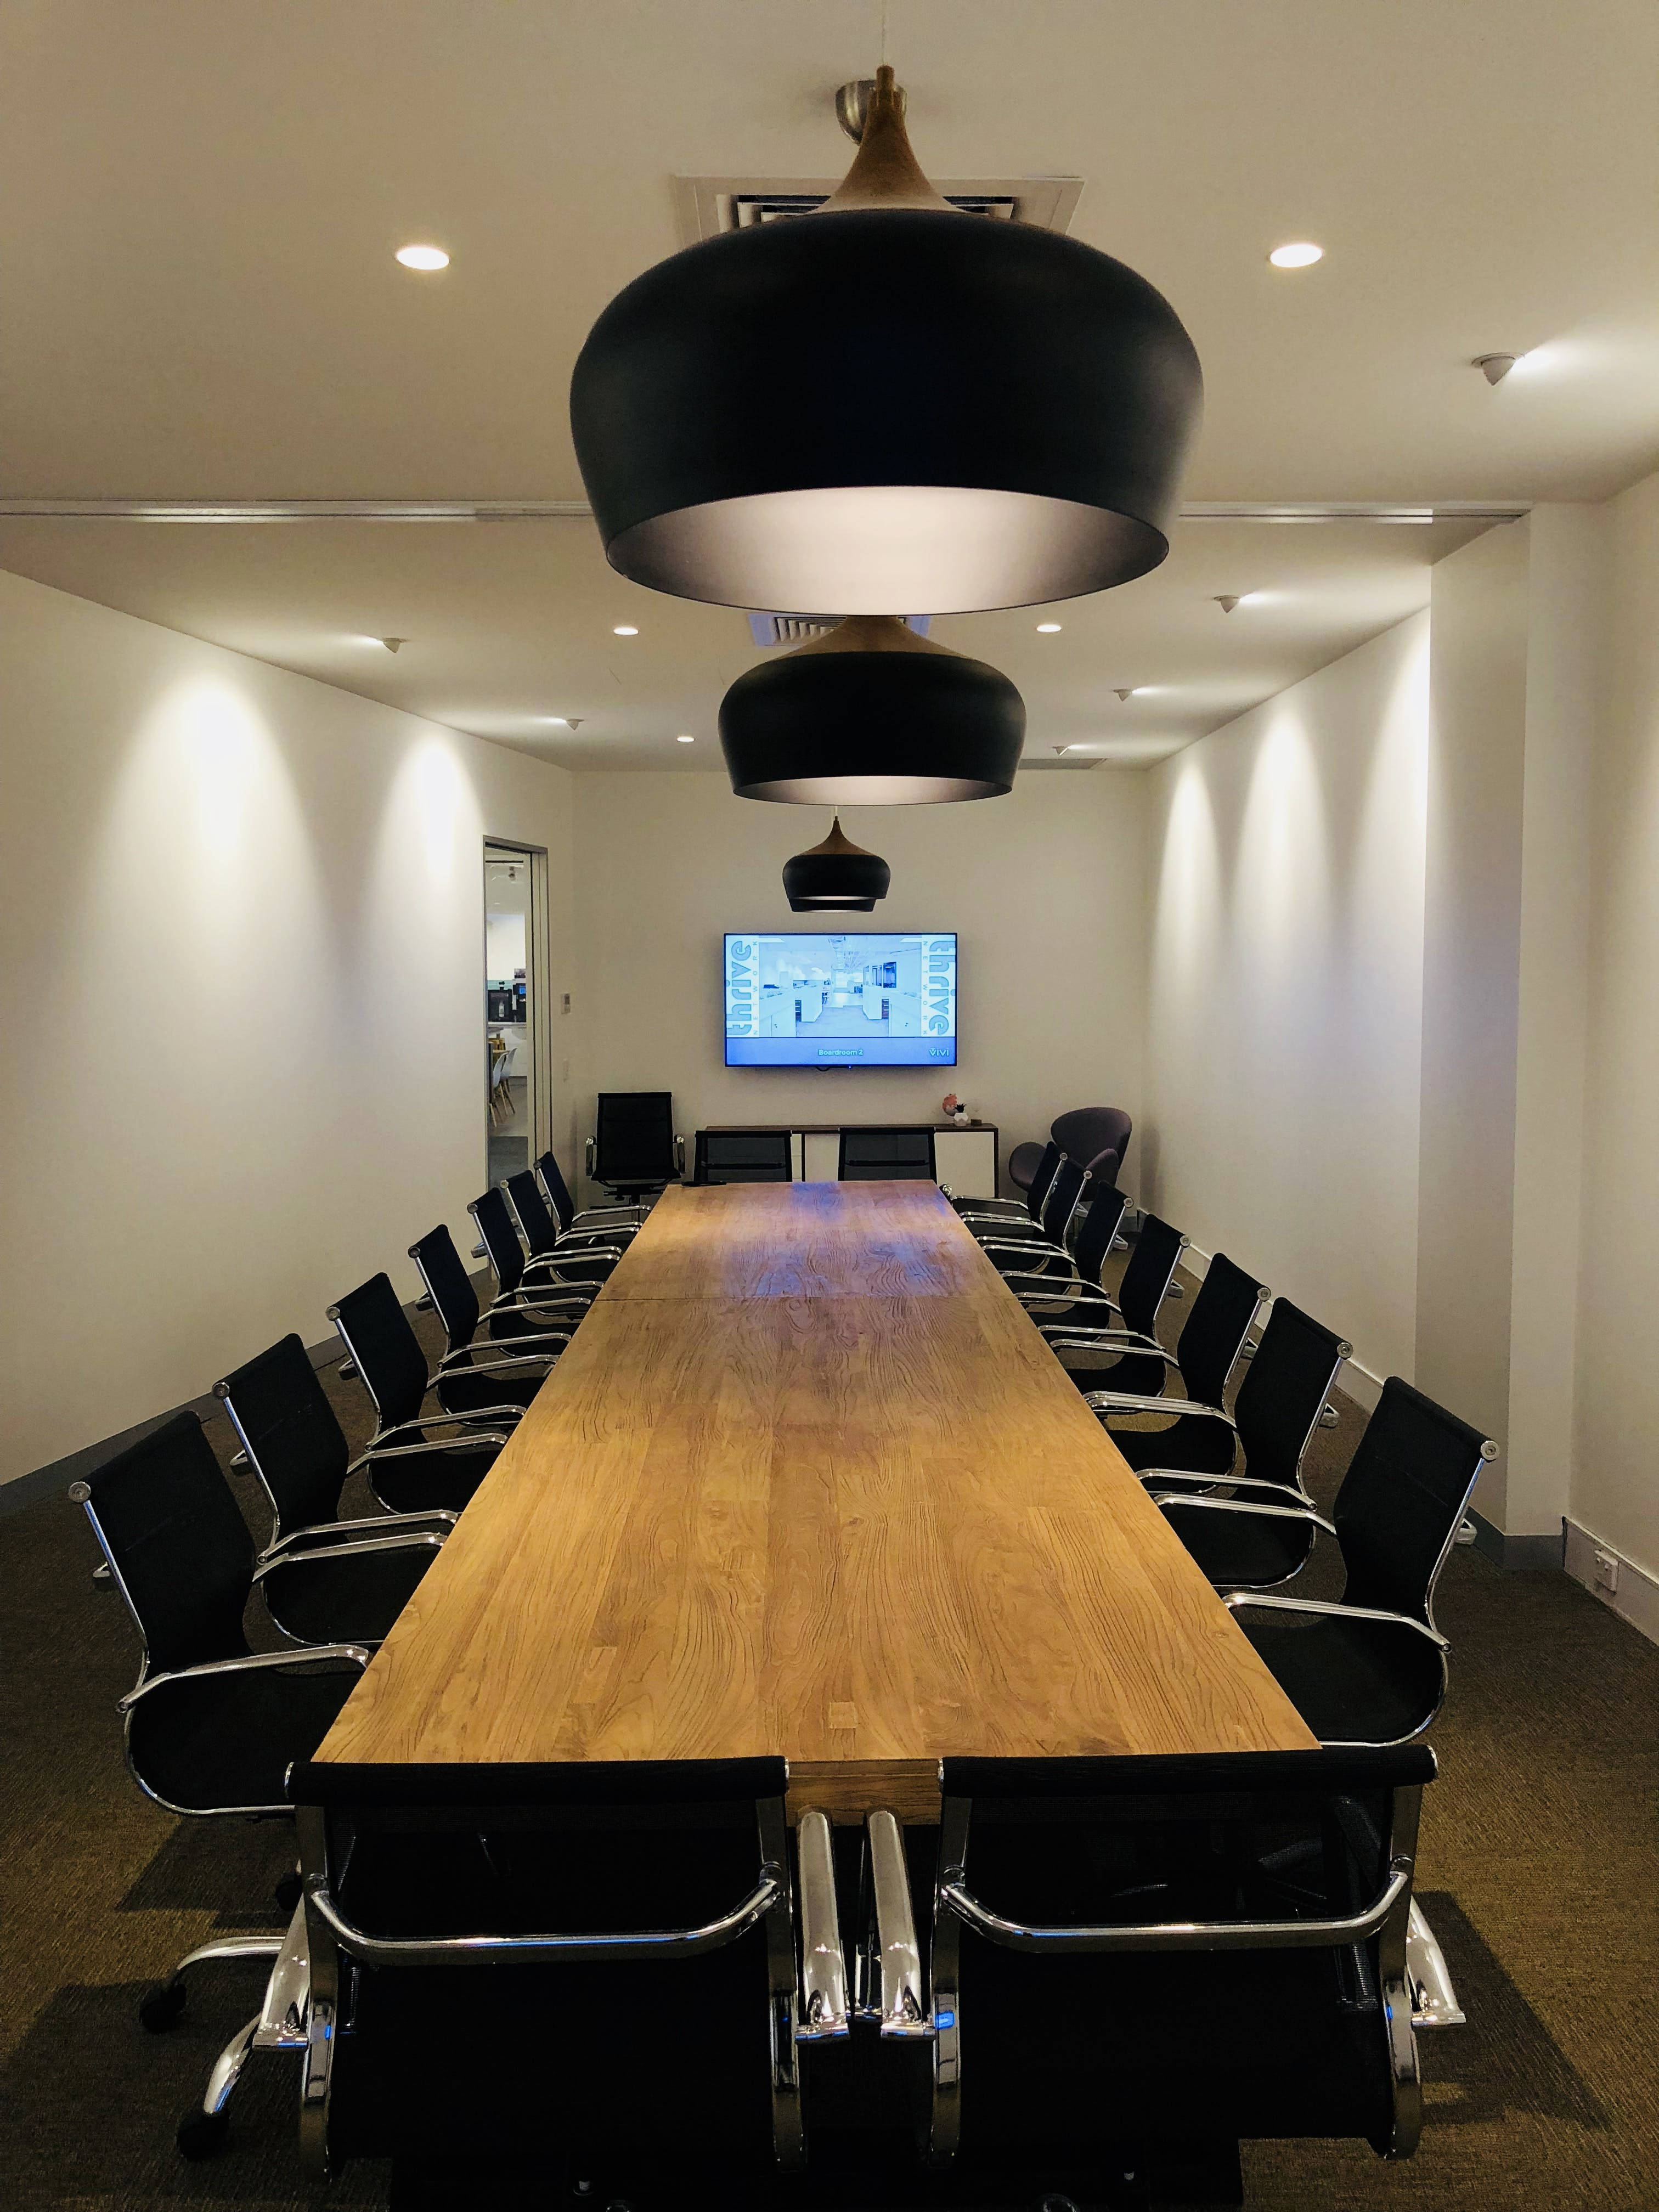 The Chuck Norris, meeting room at The Thrive Network, image 1